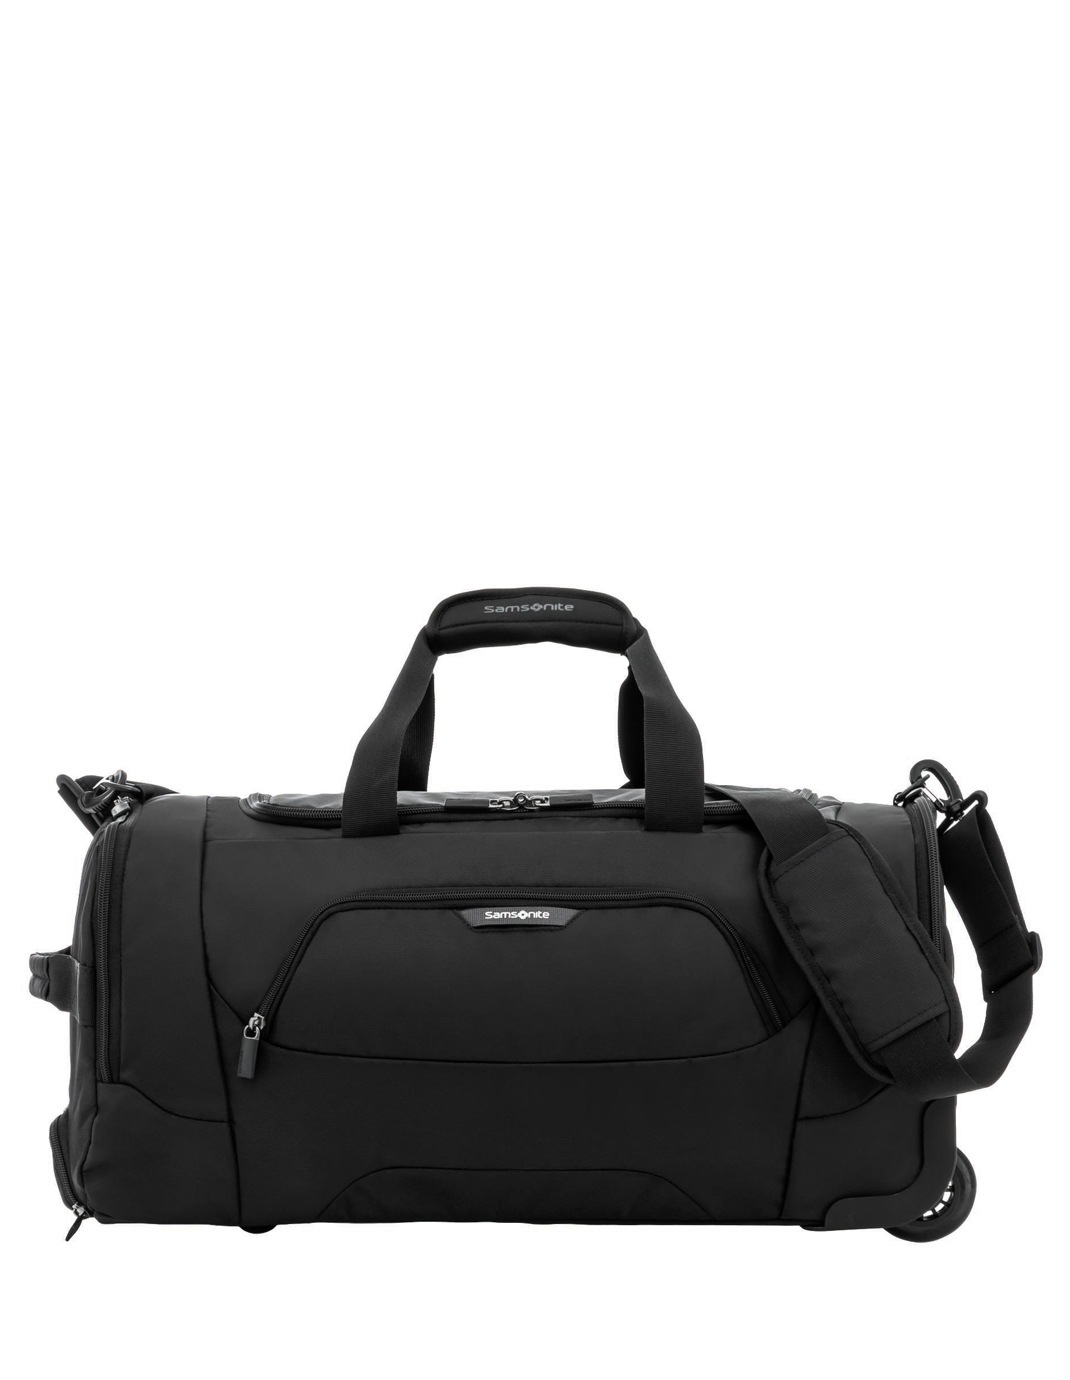 eBags Luggage Store – Bags, Backpacks and all travel bags. When you're looking for a great new bag, searching for a durable new suitcase, or shopping for luggage online, eBags is your number one luggage store to shop.